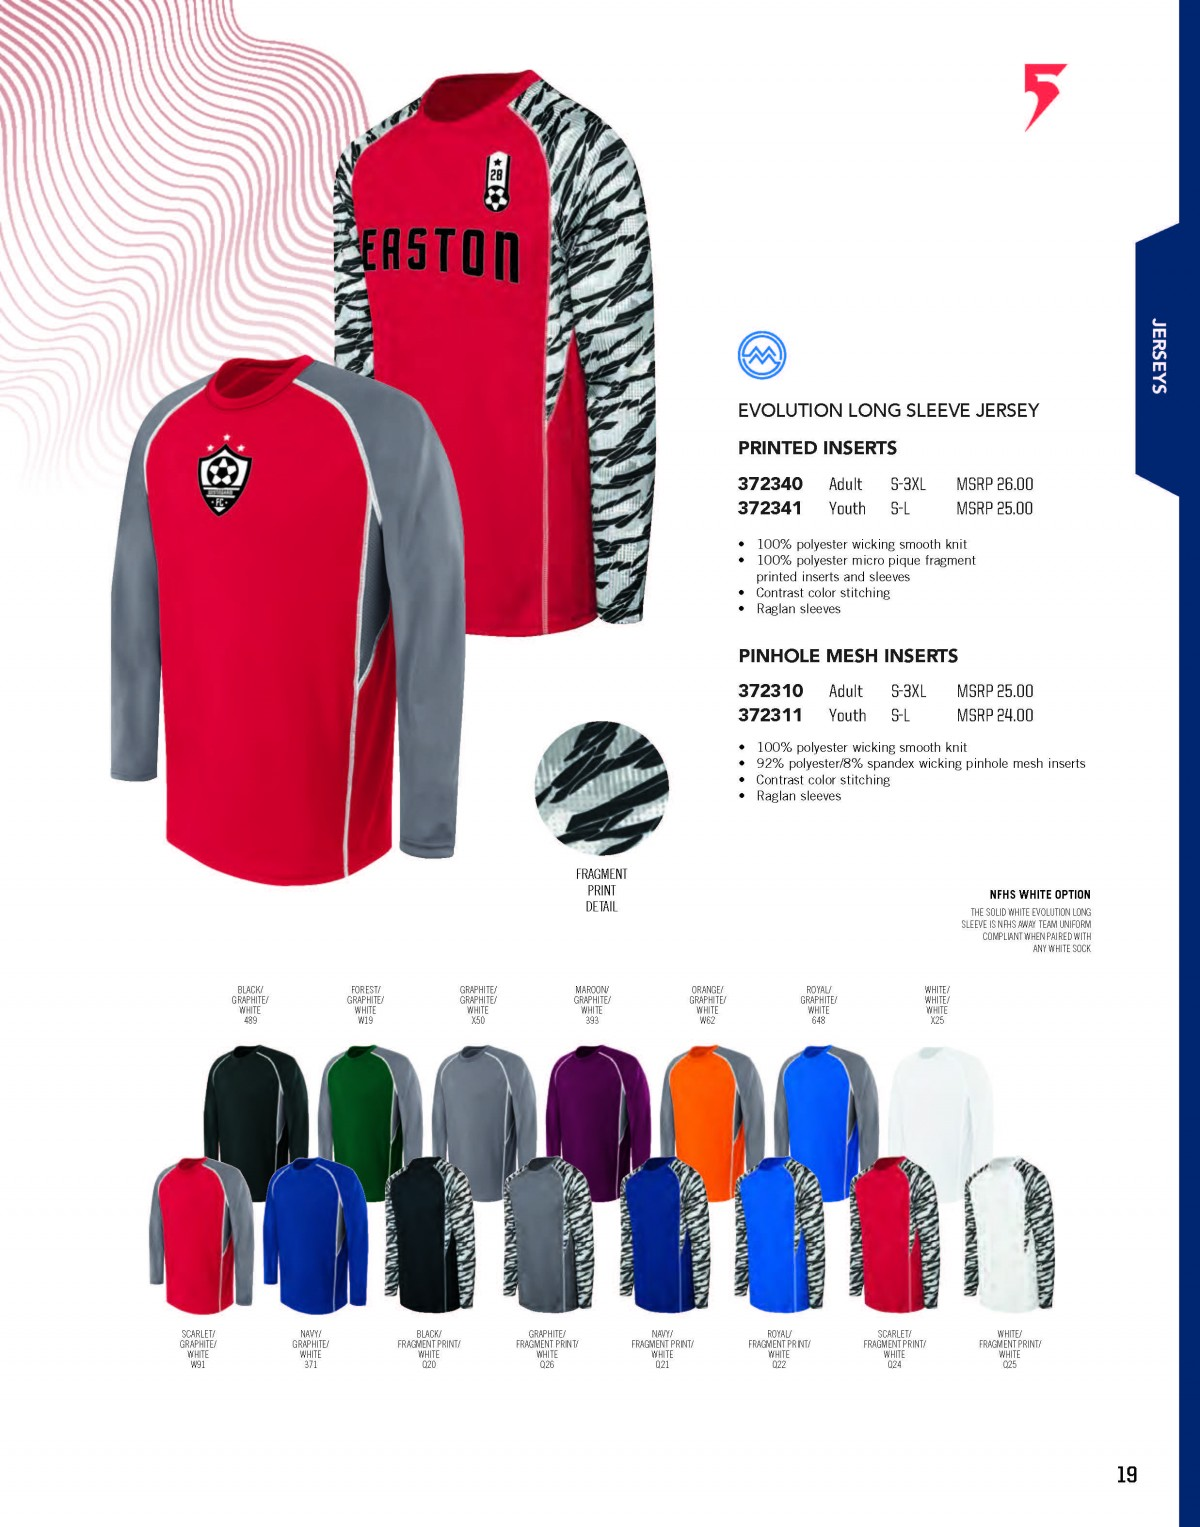 316e652a4c6 Augusta Holloway High Five Russell Athletic Soccer Apparel 2019